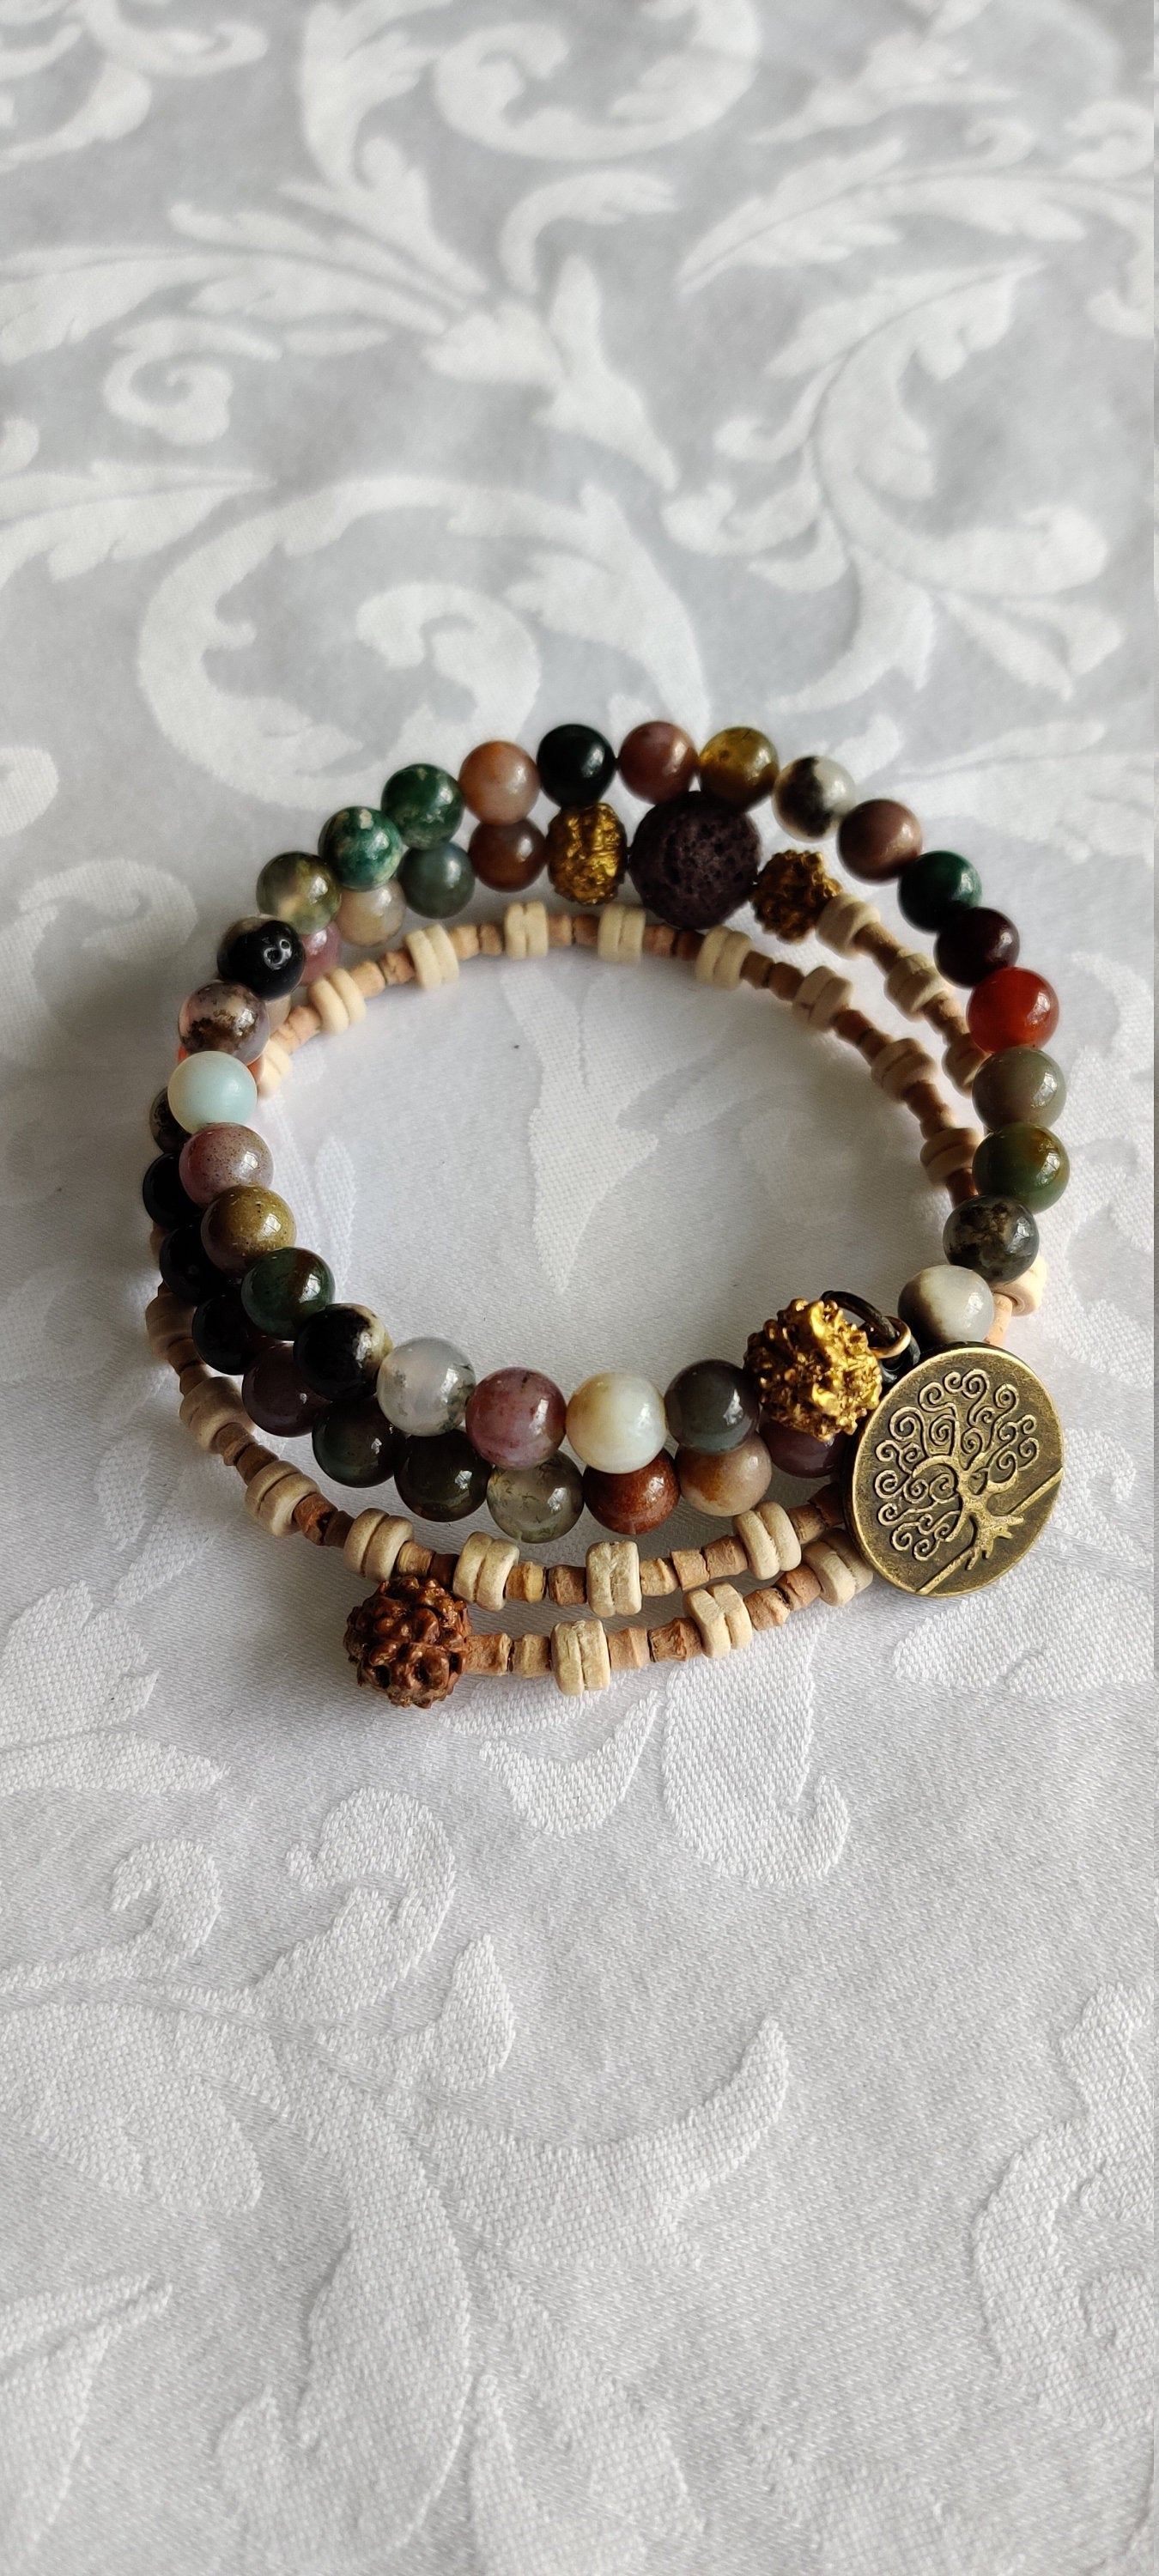 Gifts for her, Yoga jewelry, Healing beads, Agate, Rudraksha, Tulsi, Mala bracelet, Wire Wrap, Tree of Life charm, Blessed with Reiki energy